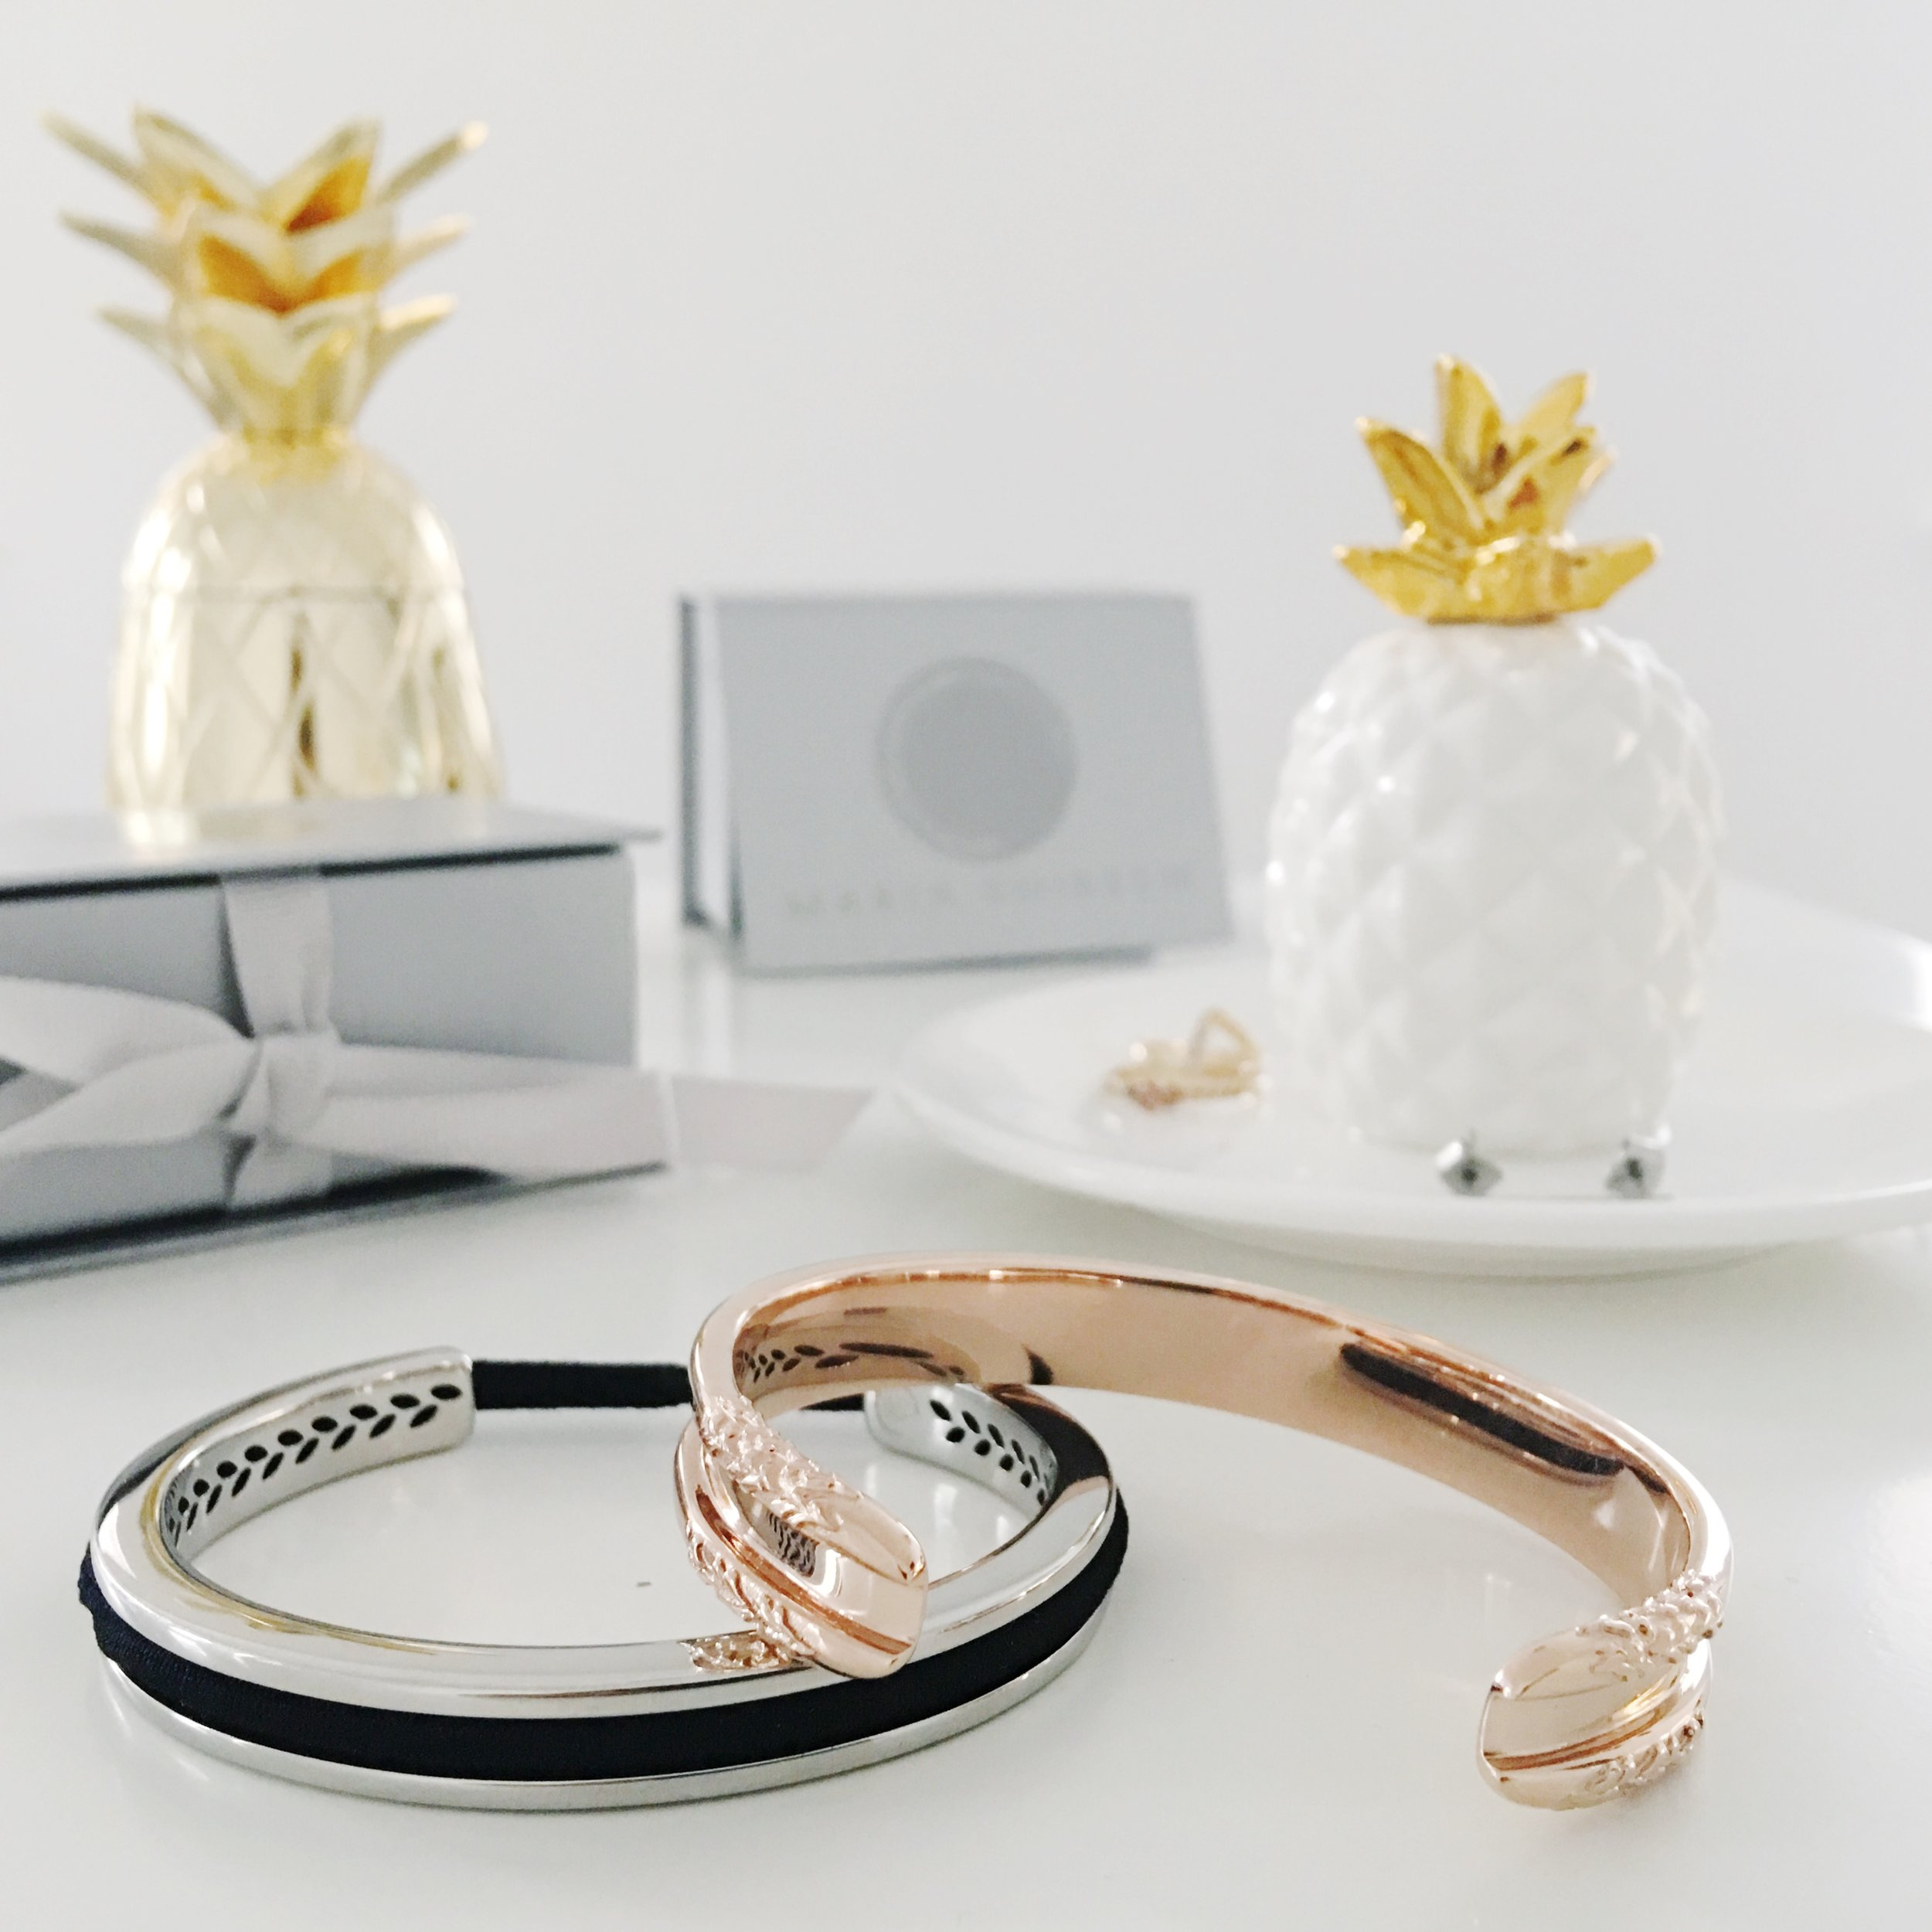 Maria Shireen HairTie Bracelets in Silver Laurel and Rose Gold Floral. Pineapple Jewelry Dish